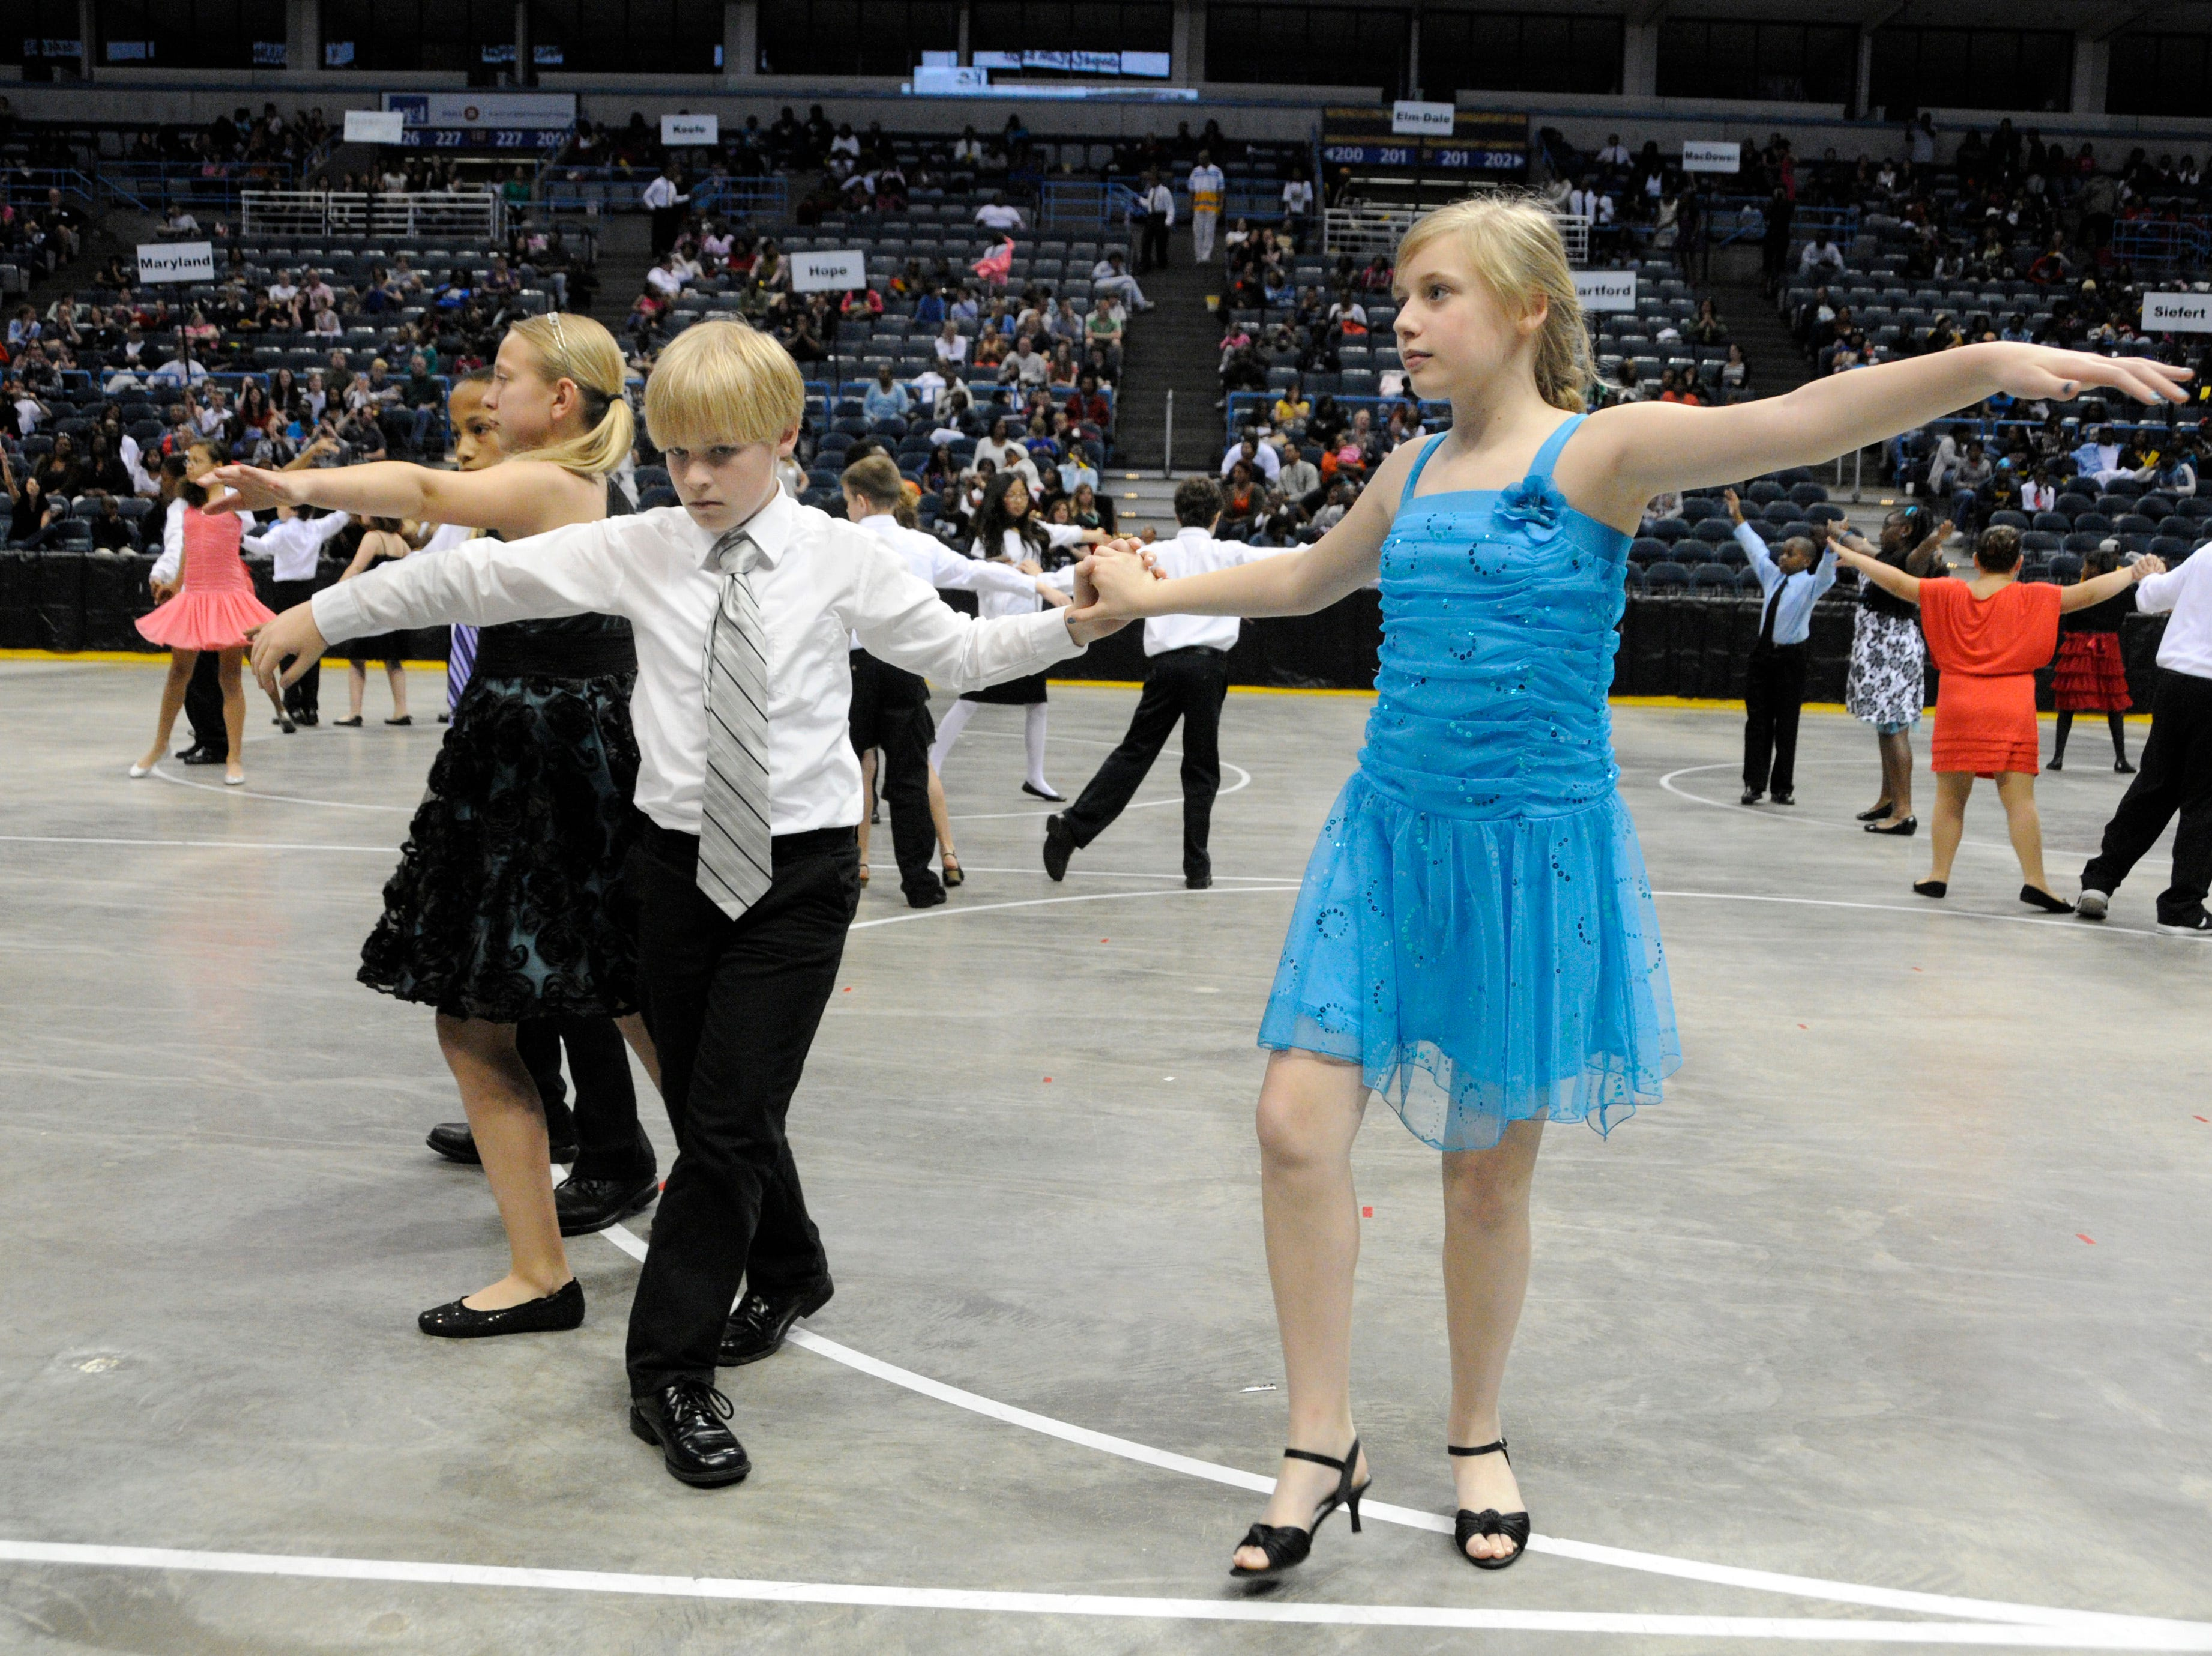 2012: Brian Keon and Molly McCready of Roosevelt Elementary School in Wauwatosa dance the tango during the Danceworks Mad Hot Ballroom and Tap competition at the Bradley Center.